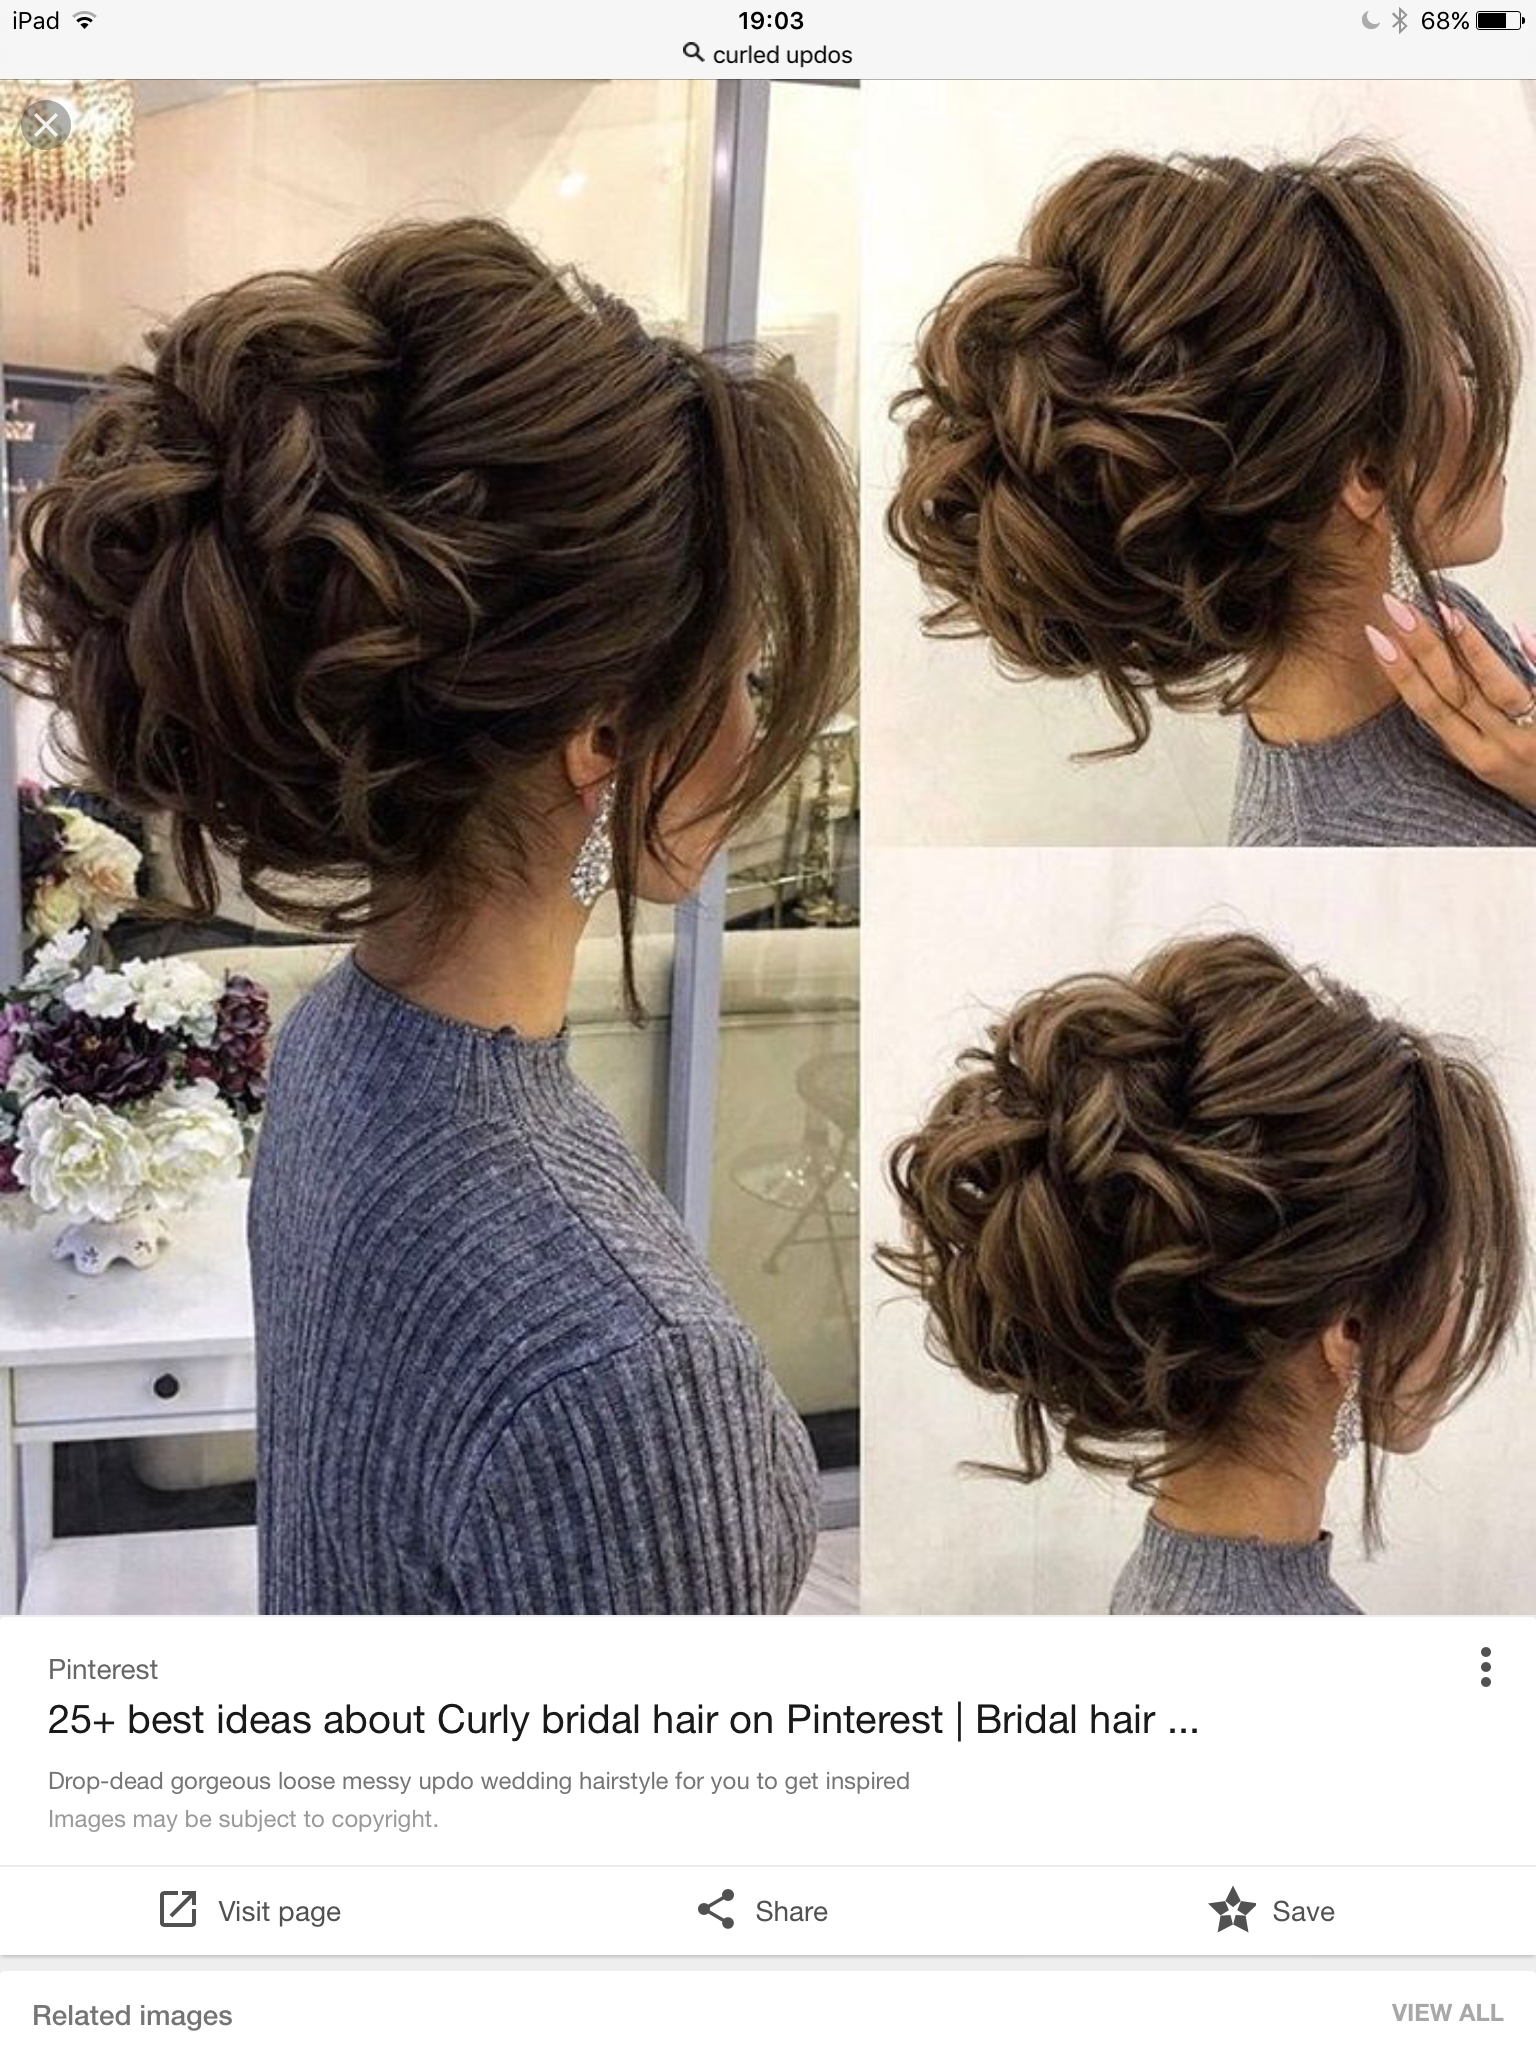 pin by kathy brinkman on hair do in 2019 | wedding